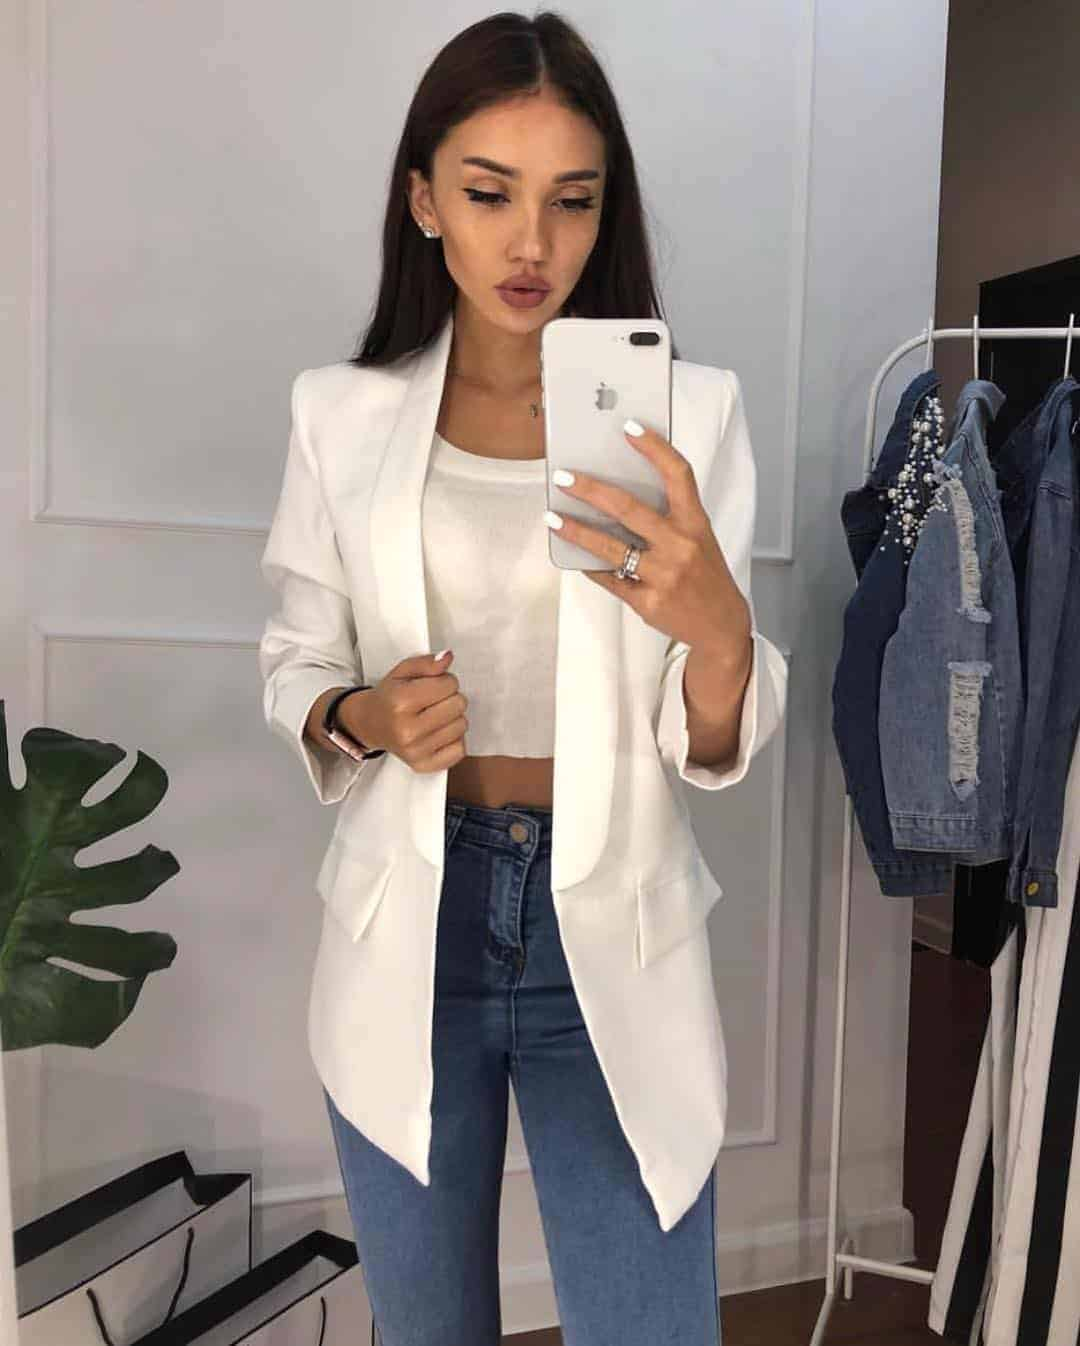 Womens Jeans 2021: Bootcut, Skinny, Ripped Style Jeans for Women 2021